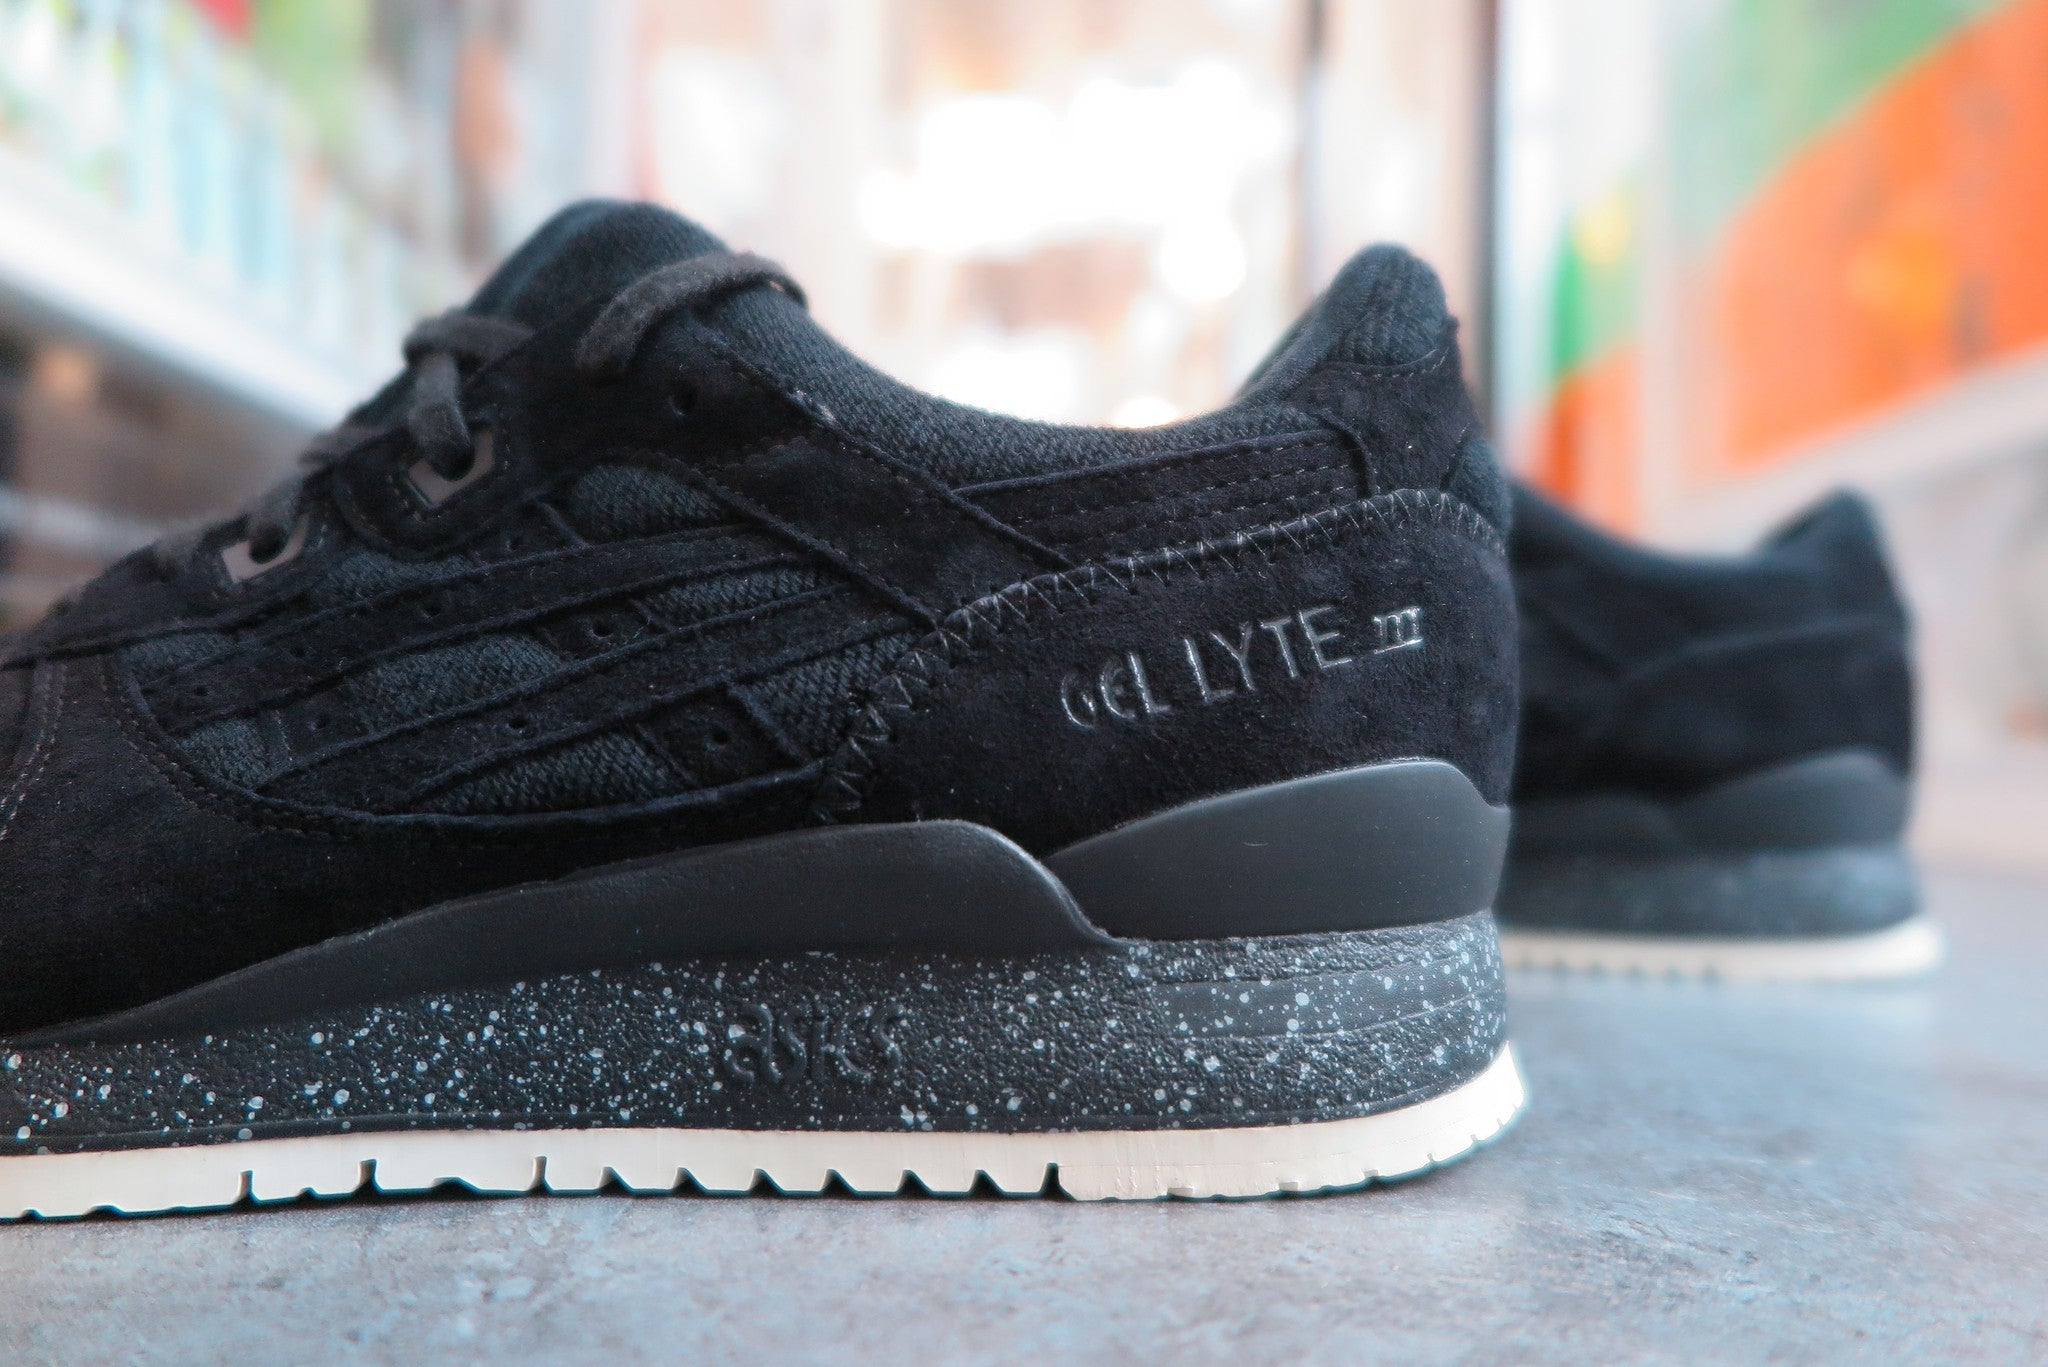 Reigning Champ X Asics Gel Lyte III - Black #H53GK-9090-Sneakers-Navy Selected Shop